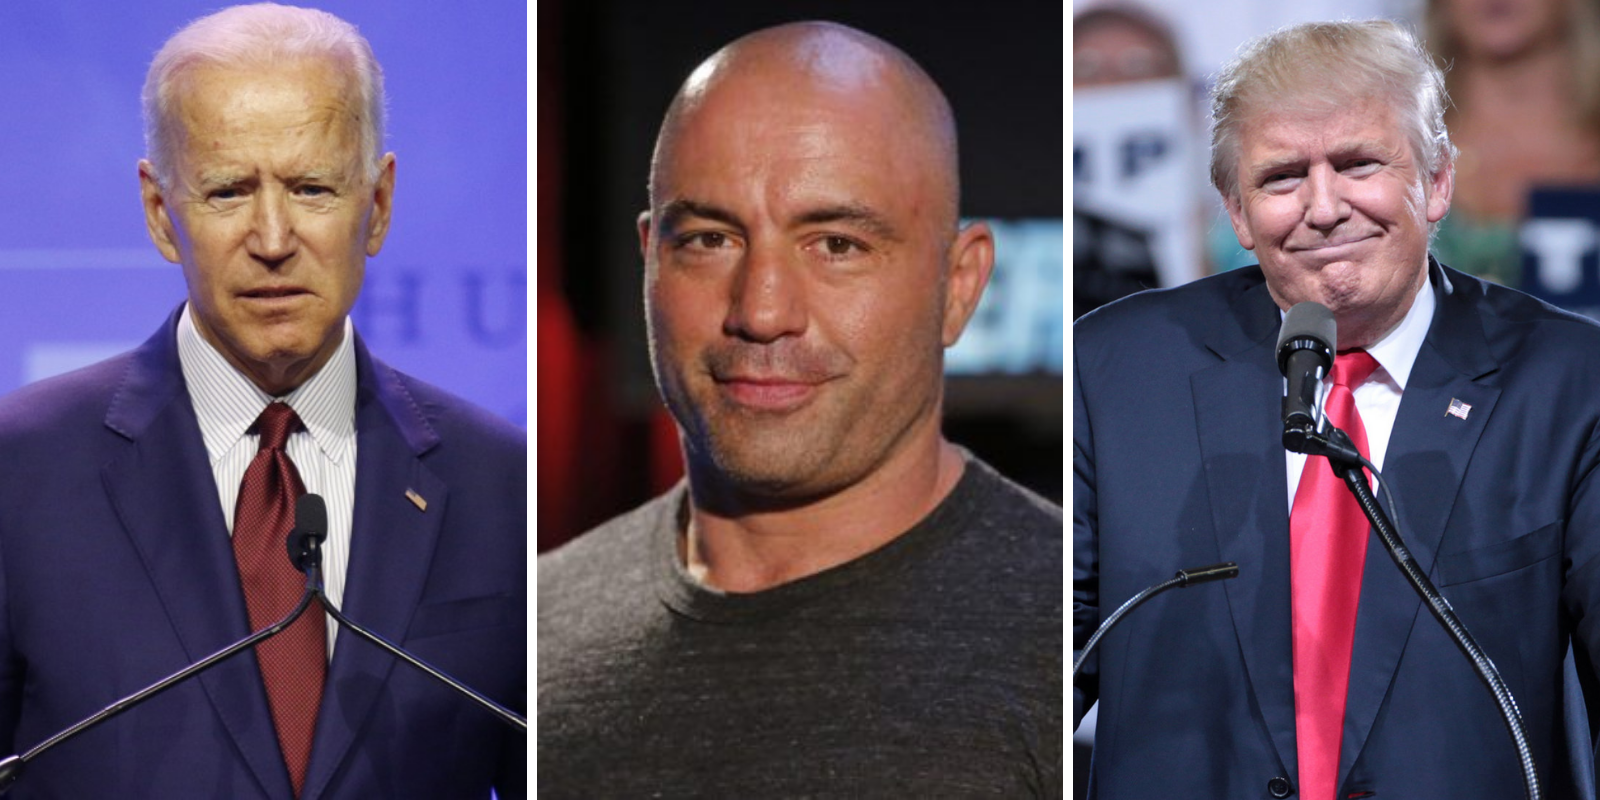 Trump wants a four hour debate with Joe Rogan to moderate